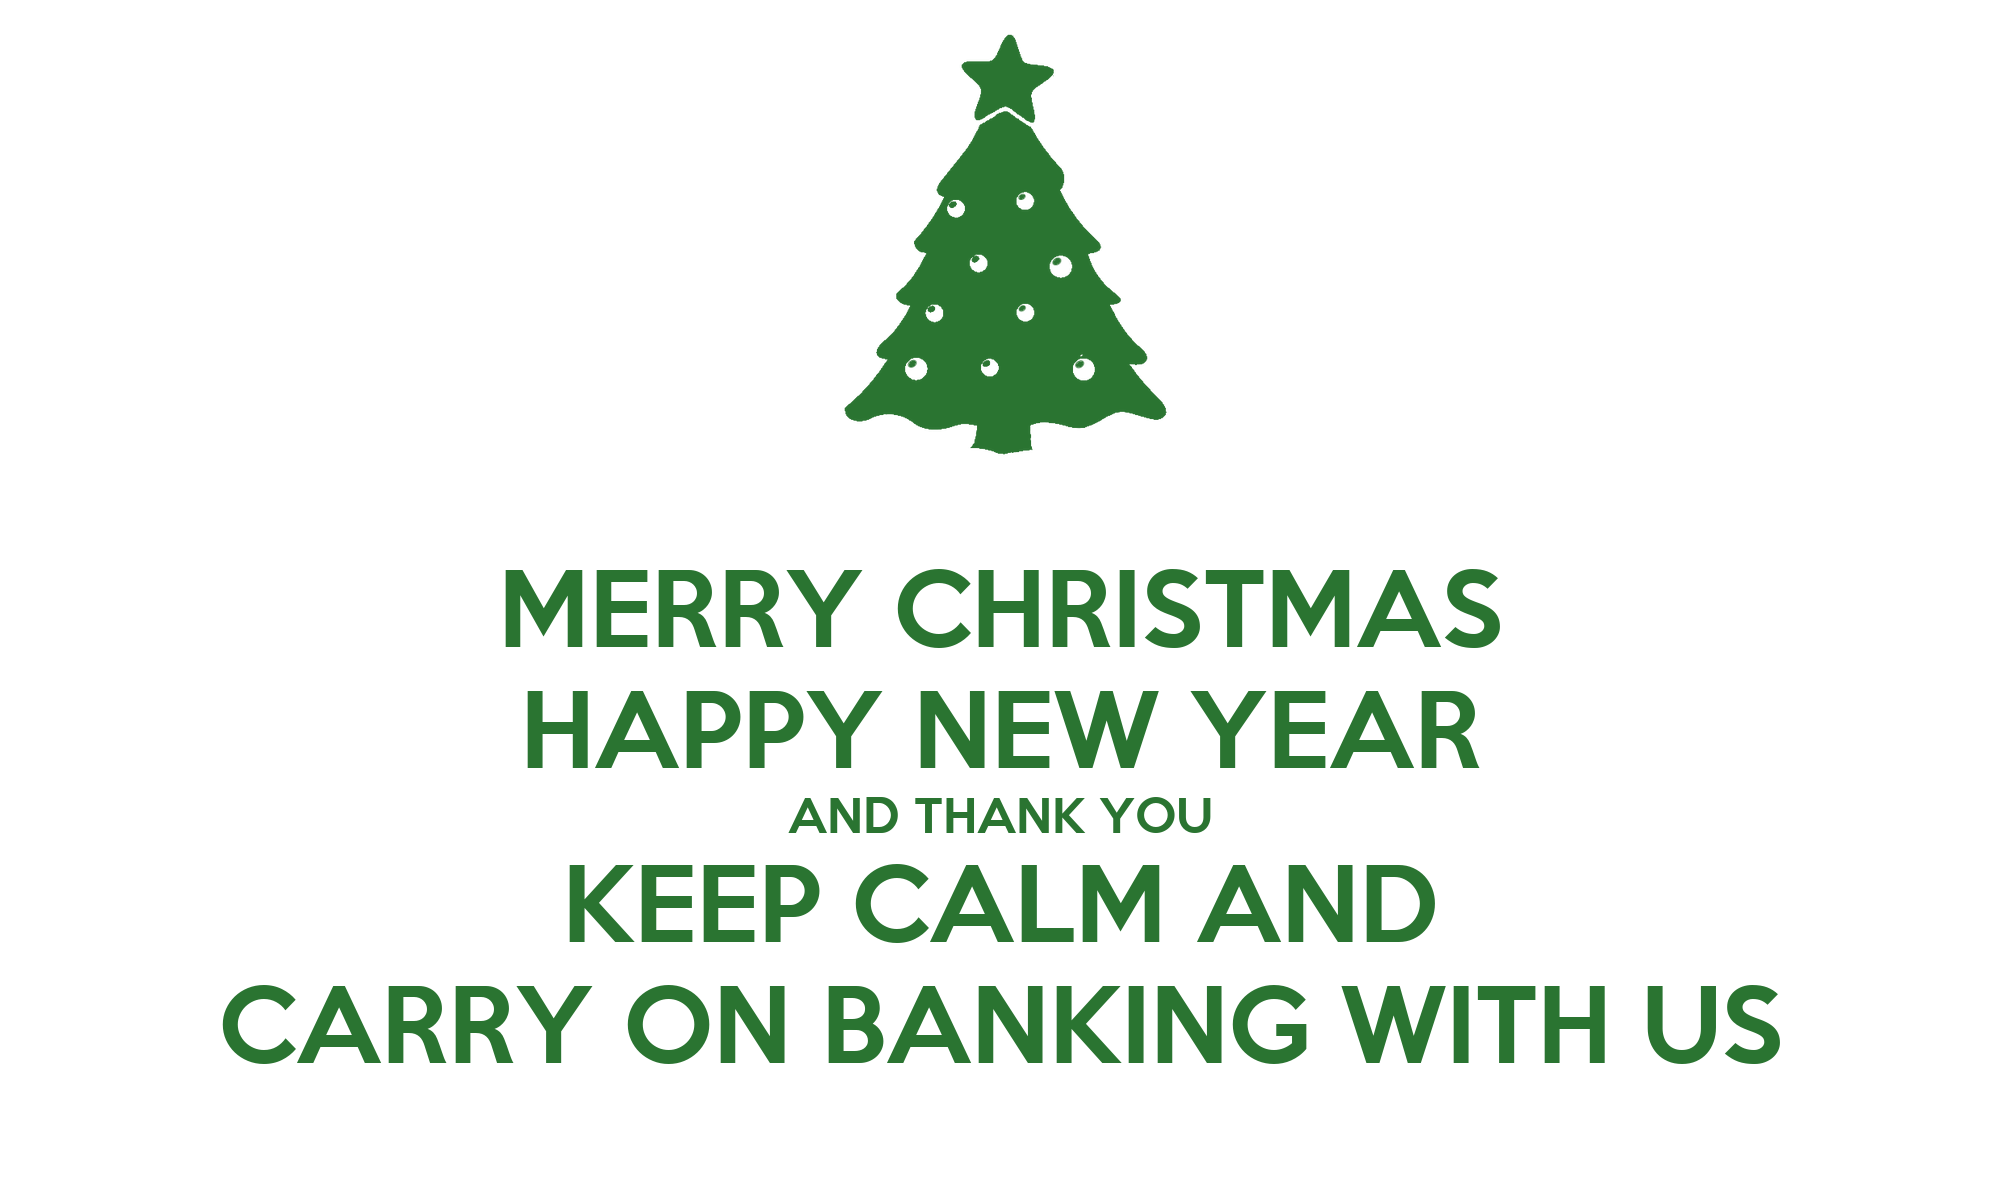 MERRY CHRISTMAS HAPPY NEW YEAR AND THANK YOU KEEP CALM AND CARRY ON ...